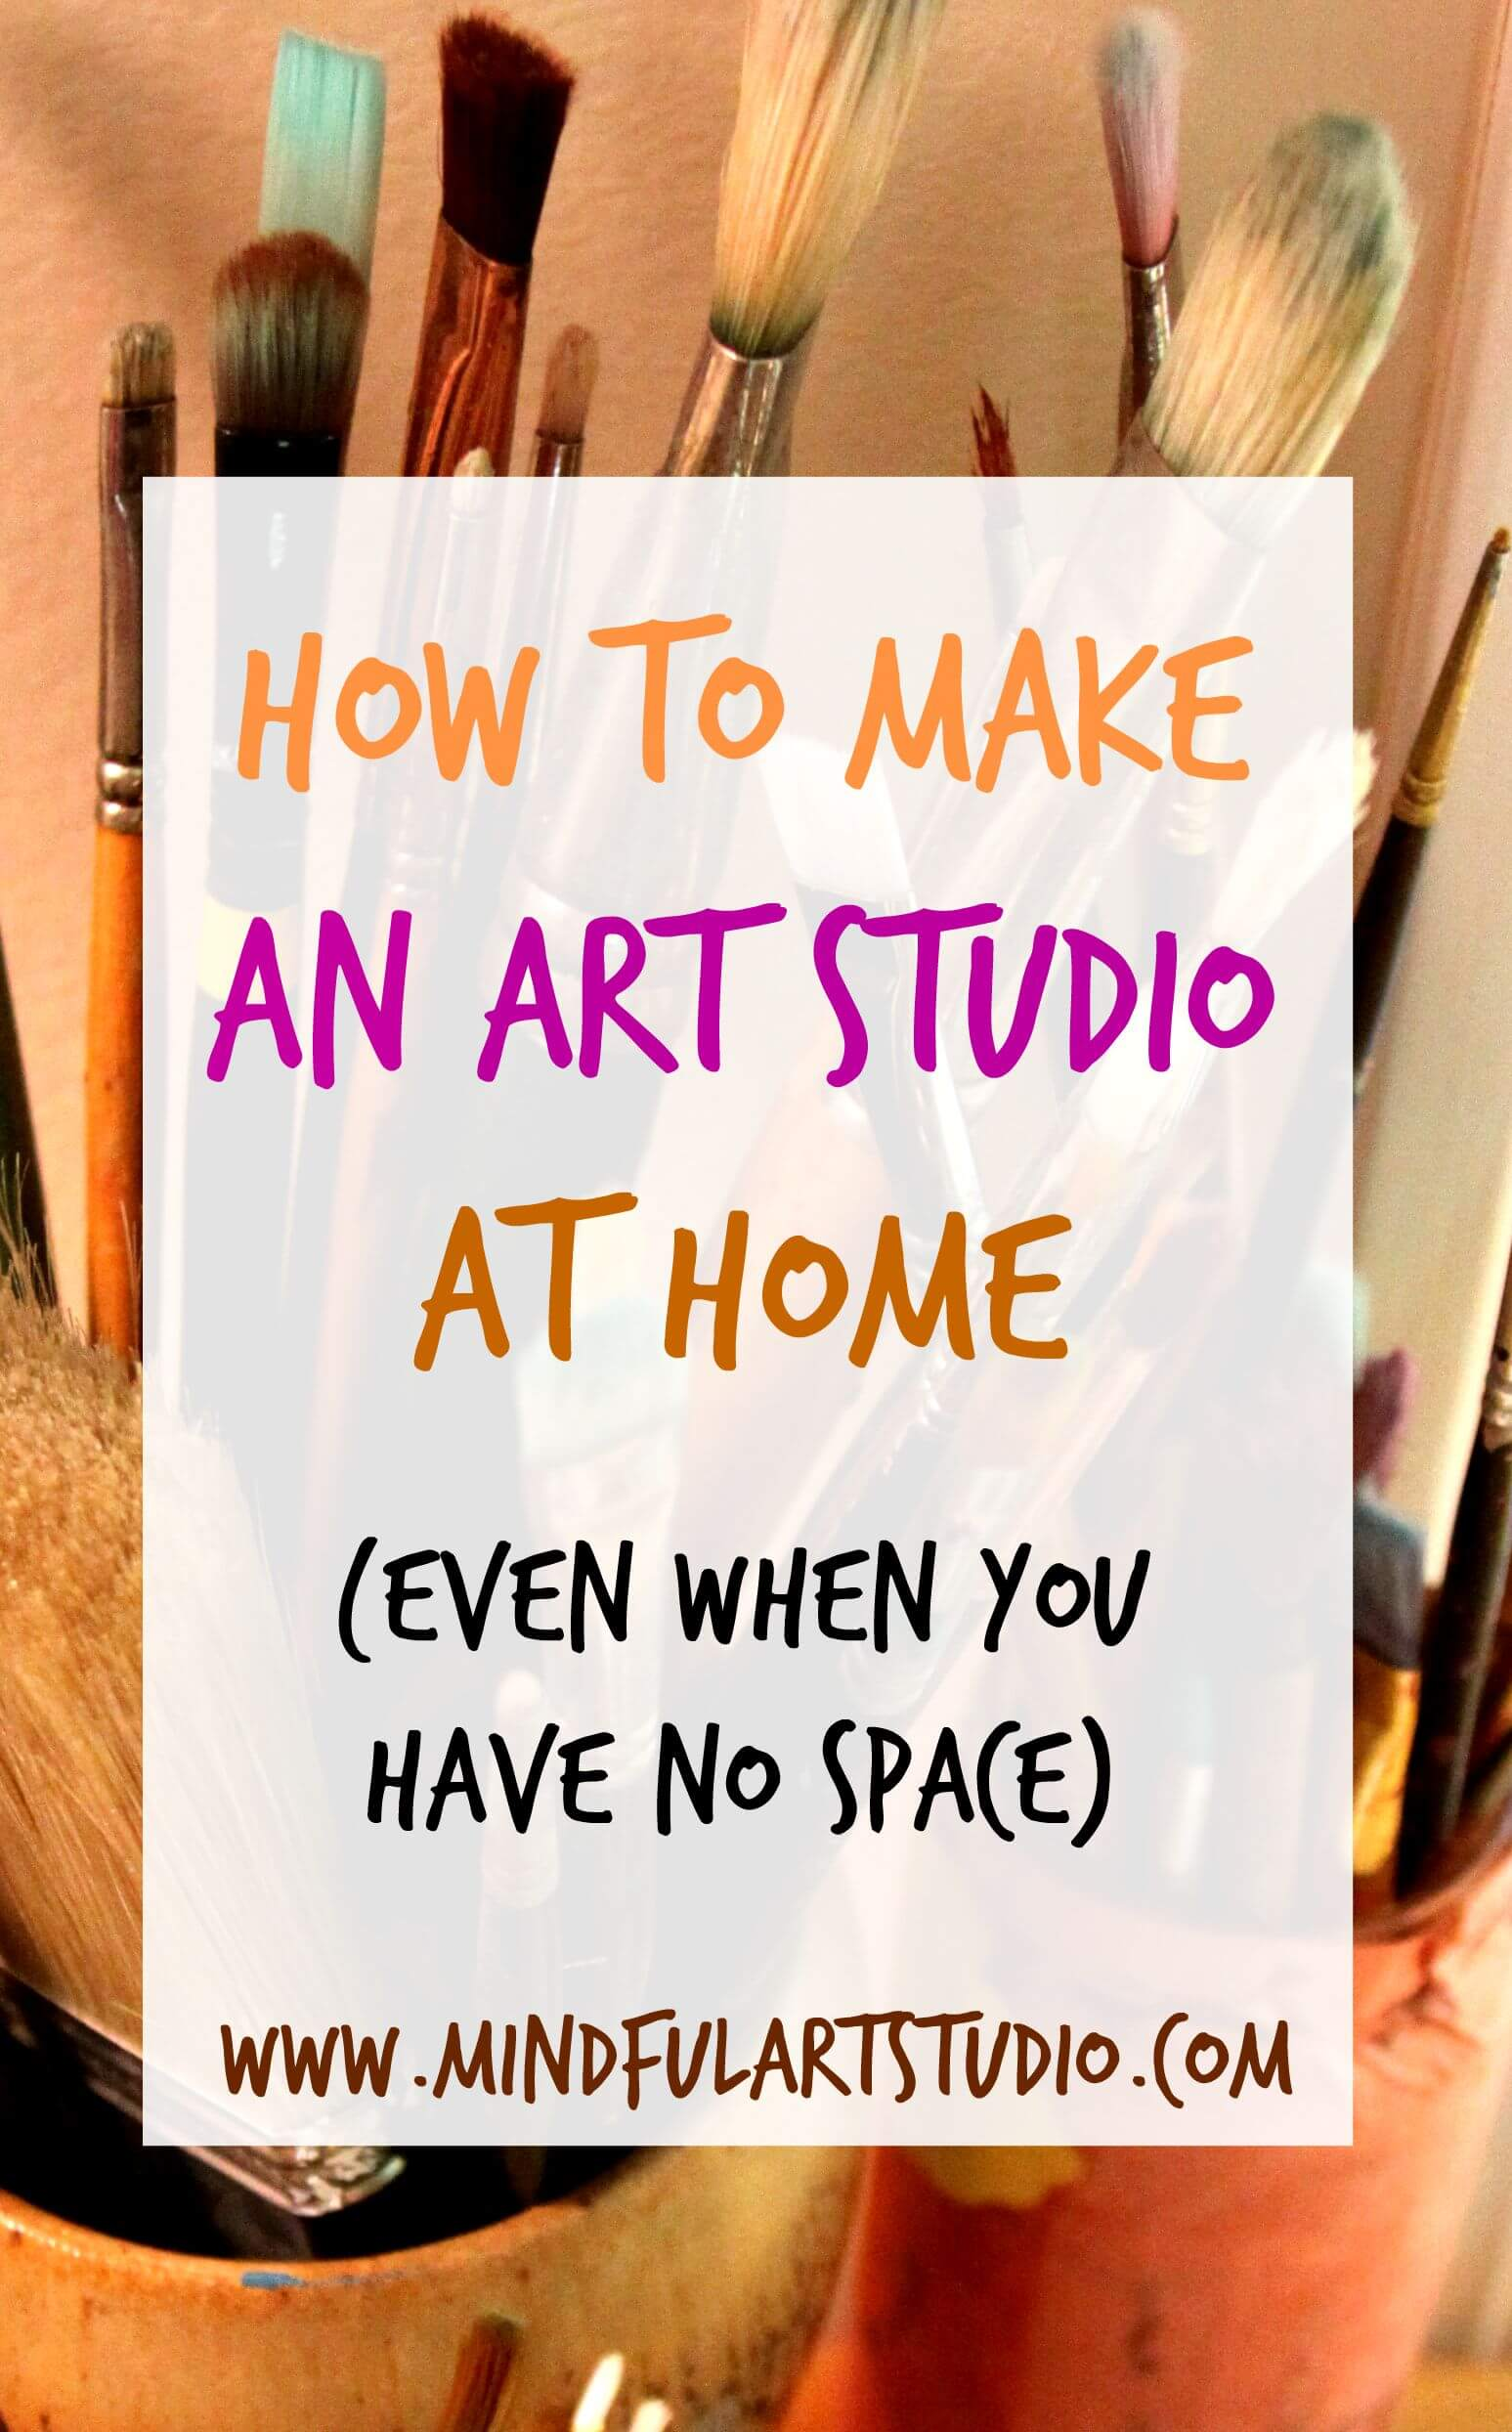 How to Make an Art Studio at Home